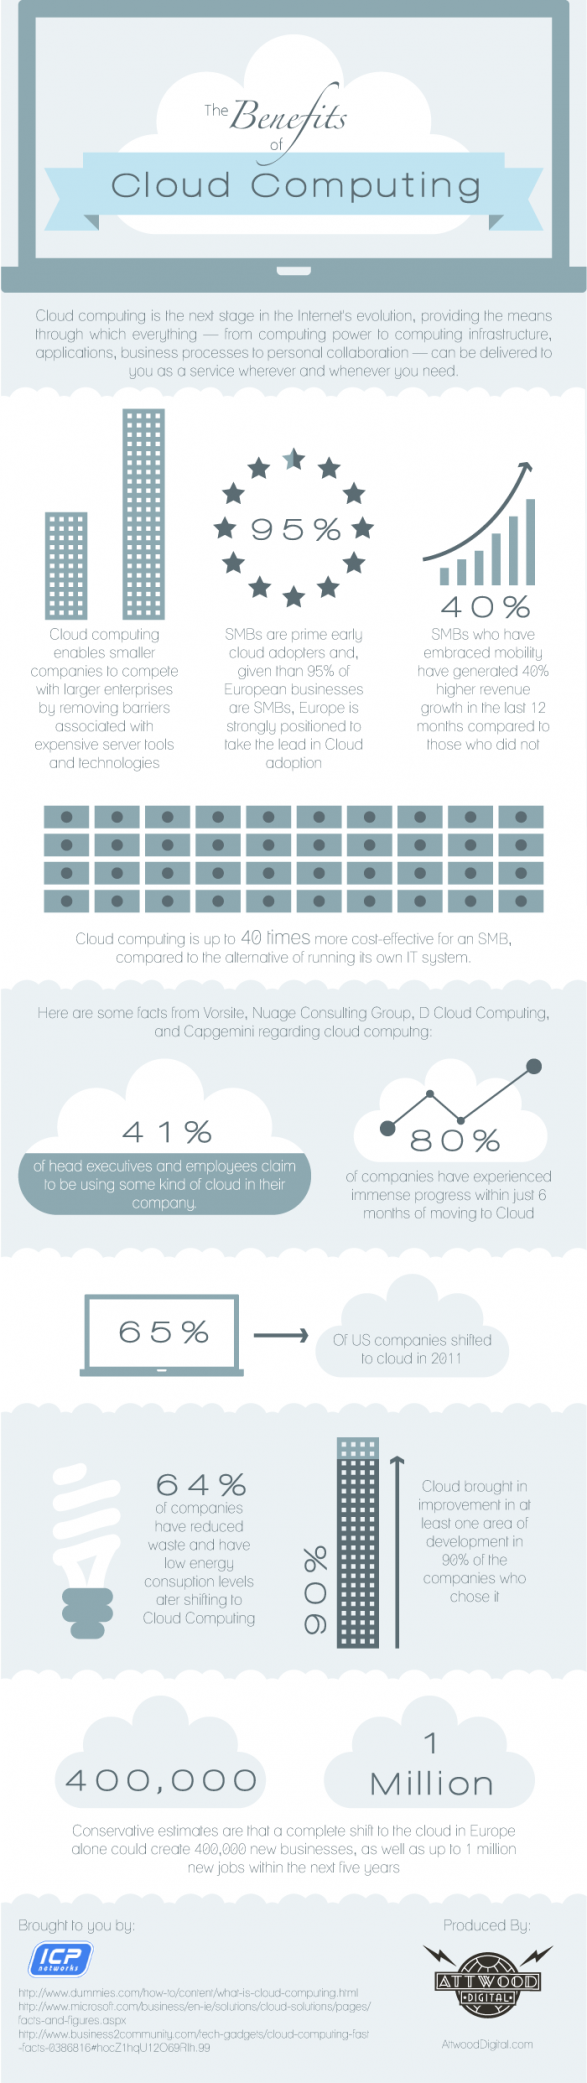 Cloud Computing and the Benefits